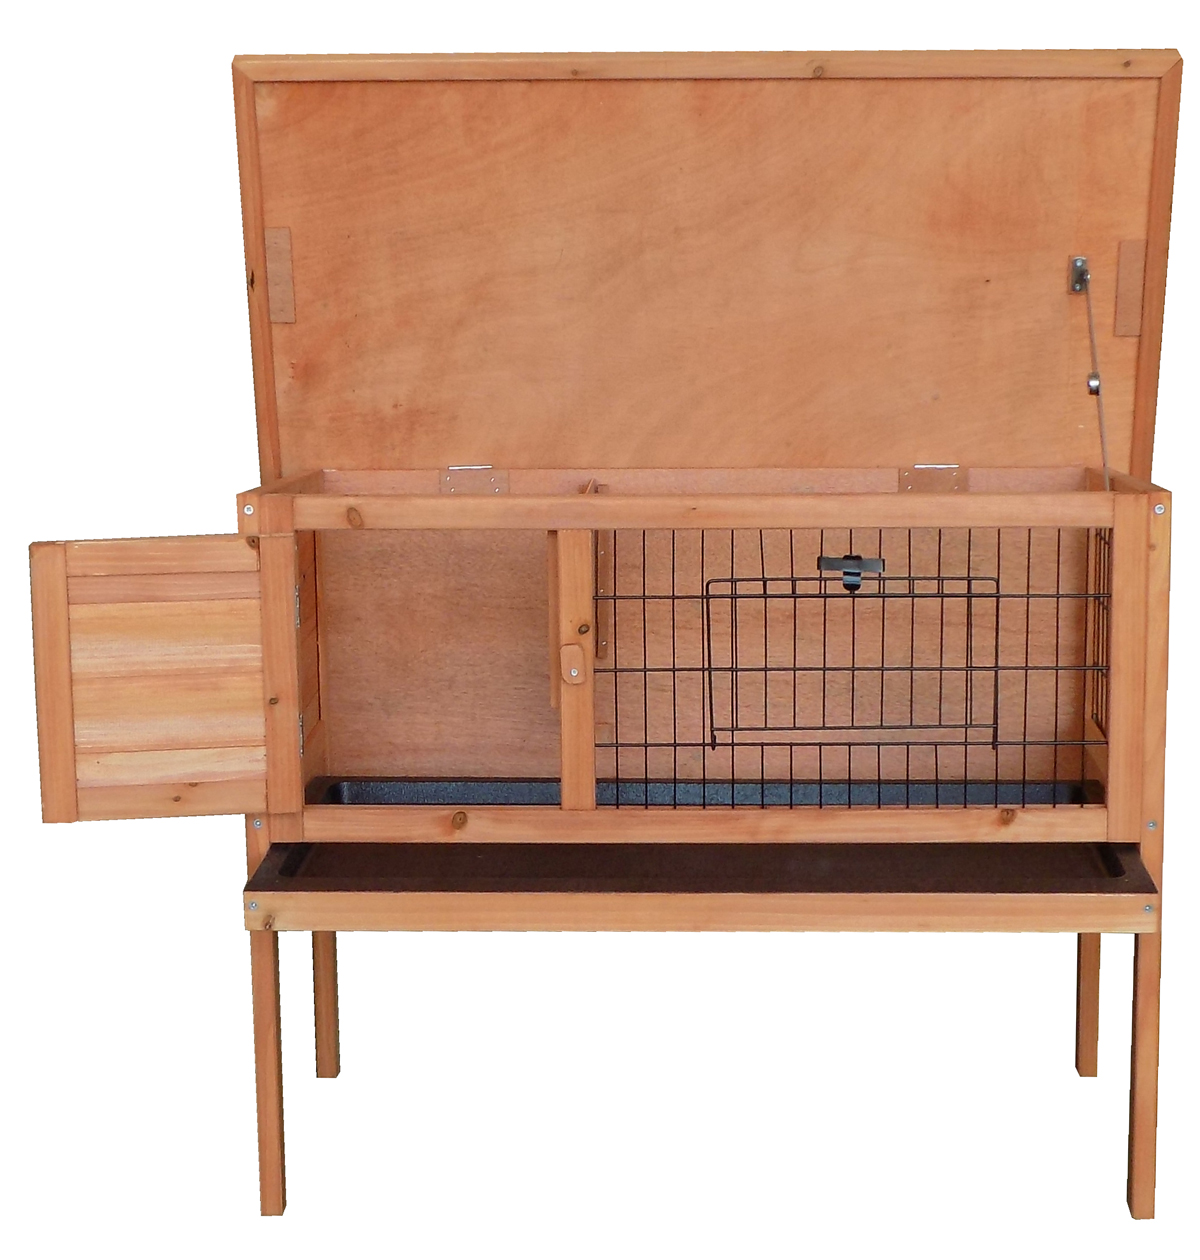 Charles-Bentley-Wooden-Raised-Rabbit-Hutch-Guinea-Pig-Cage-Run-w-Cleaning-Tray miniatura 8